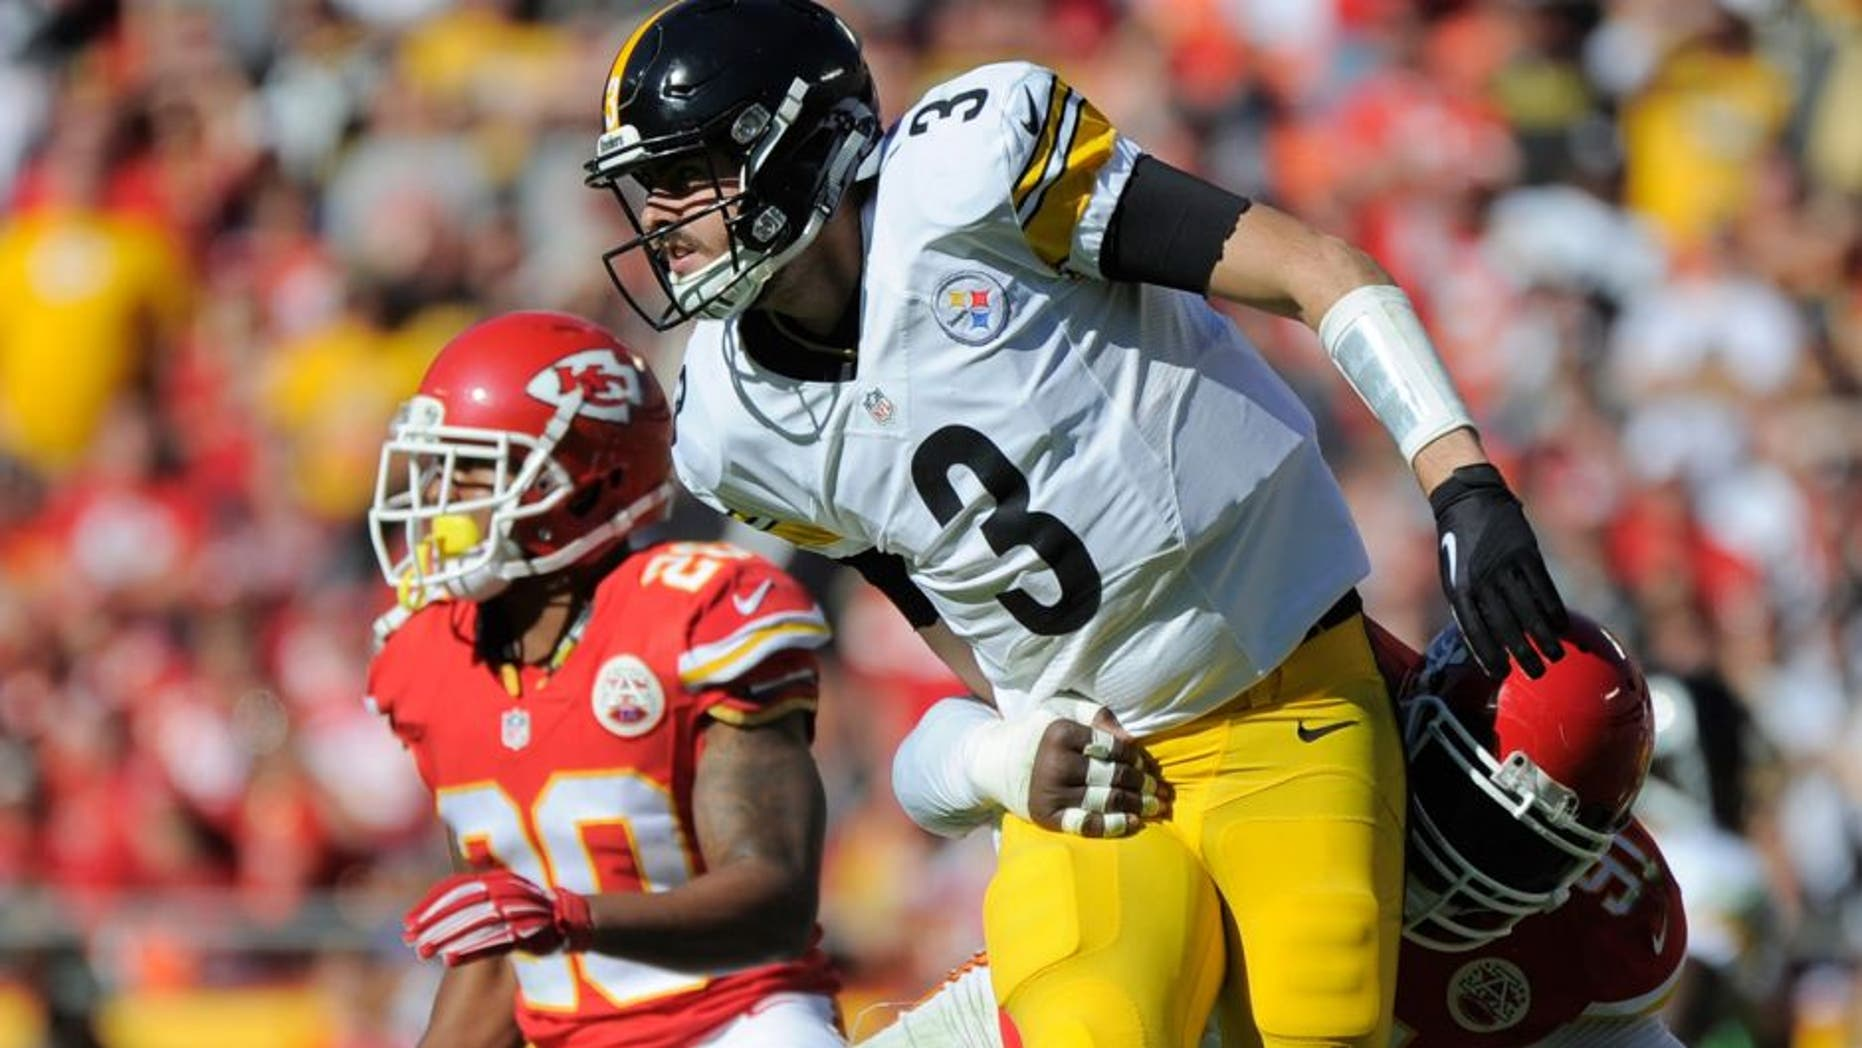 Kansas City Chiefs linebacker Tamba Hali (91) sacks Pittsburgh Steelers quarterback Landry Jones (3) for a turnover during the second half of an NFL football game in Kansas City, Mo., Sunday, Oct. 25, 2015. The Chiefs won 23-13. (AP Photo/Ed Zurga)